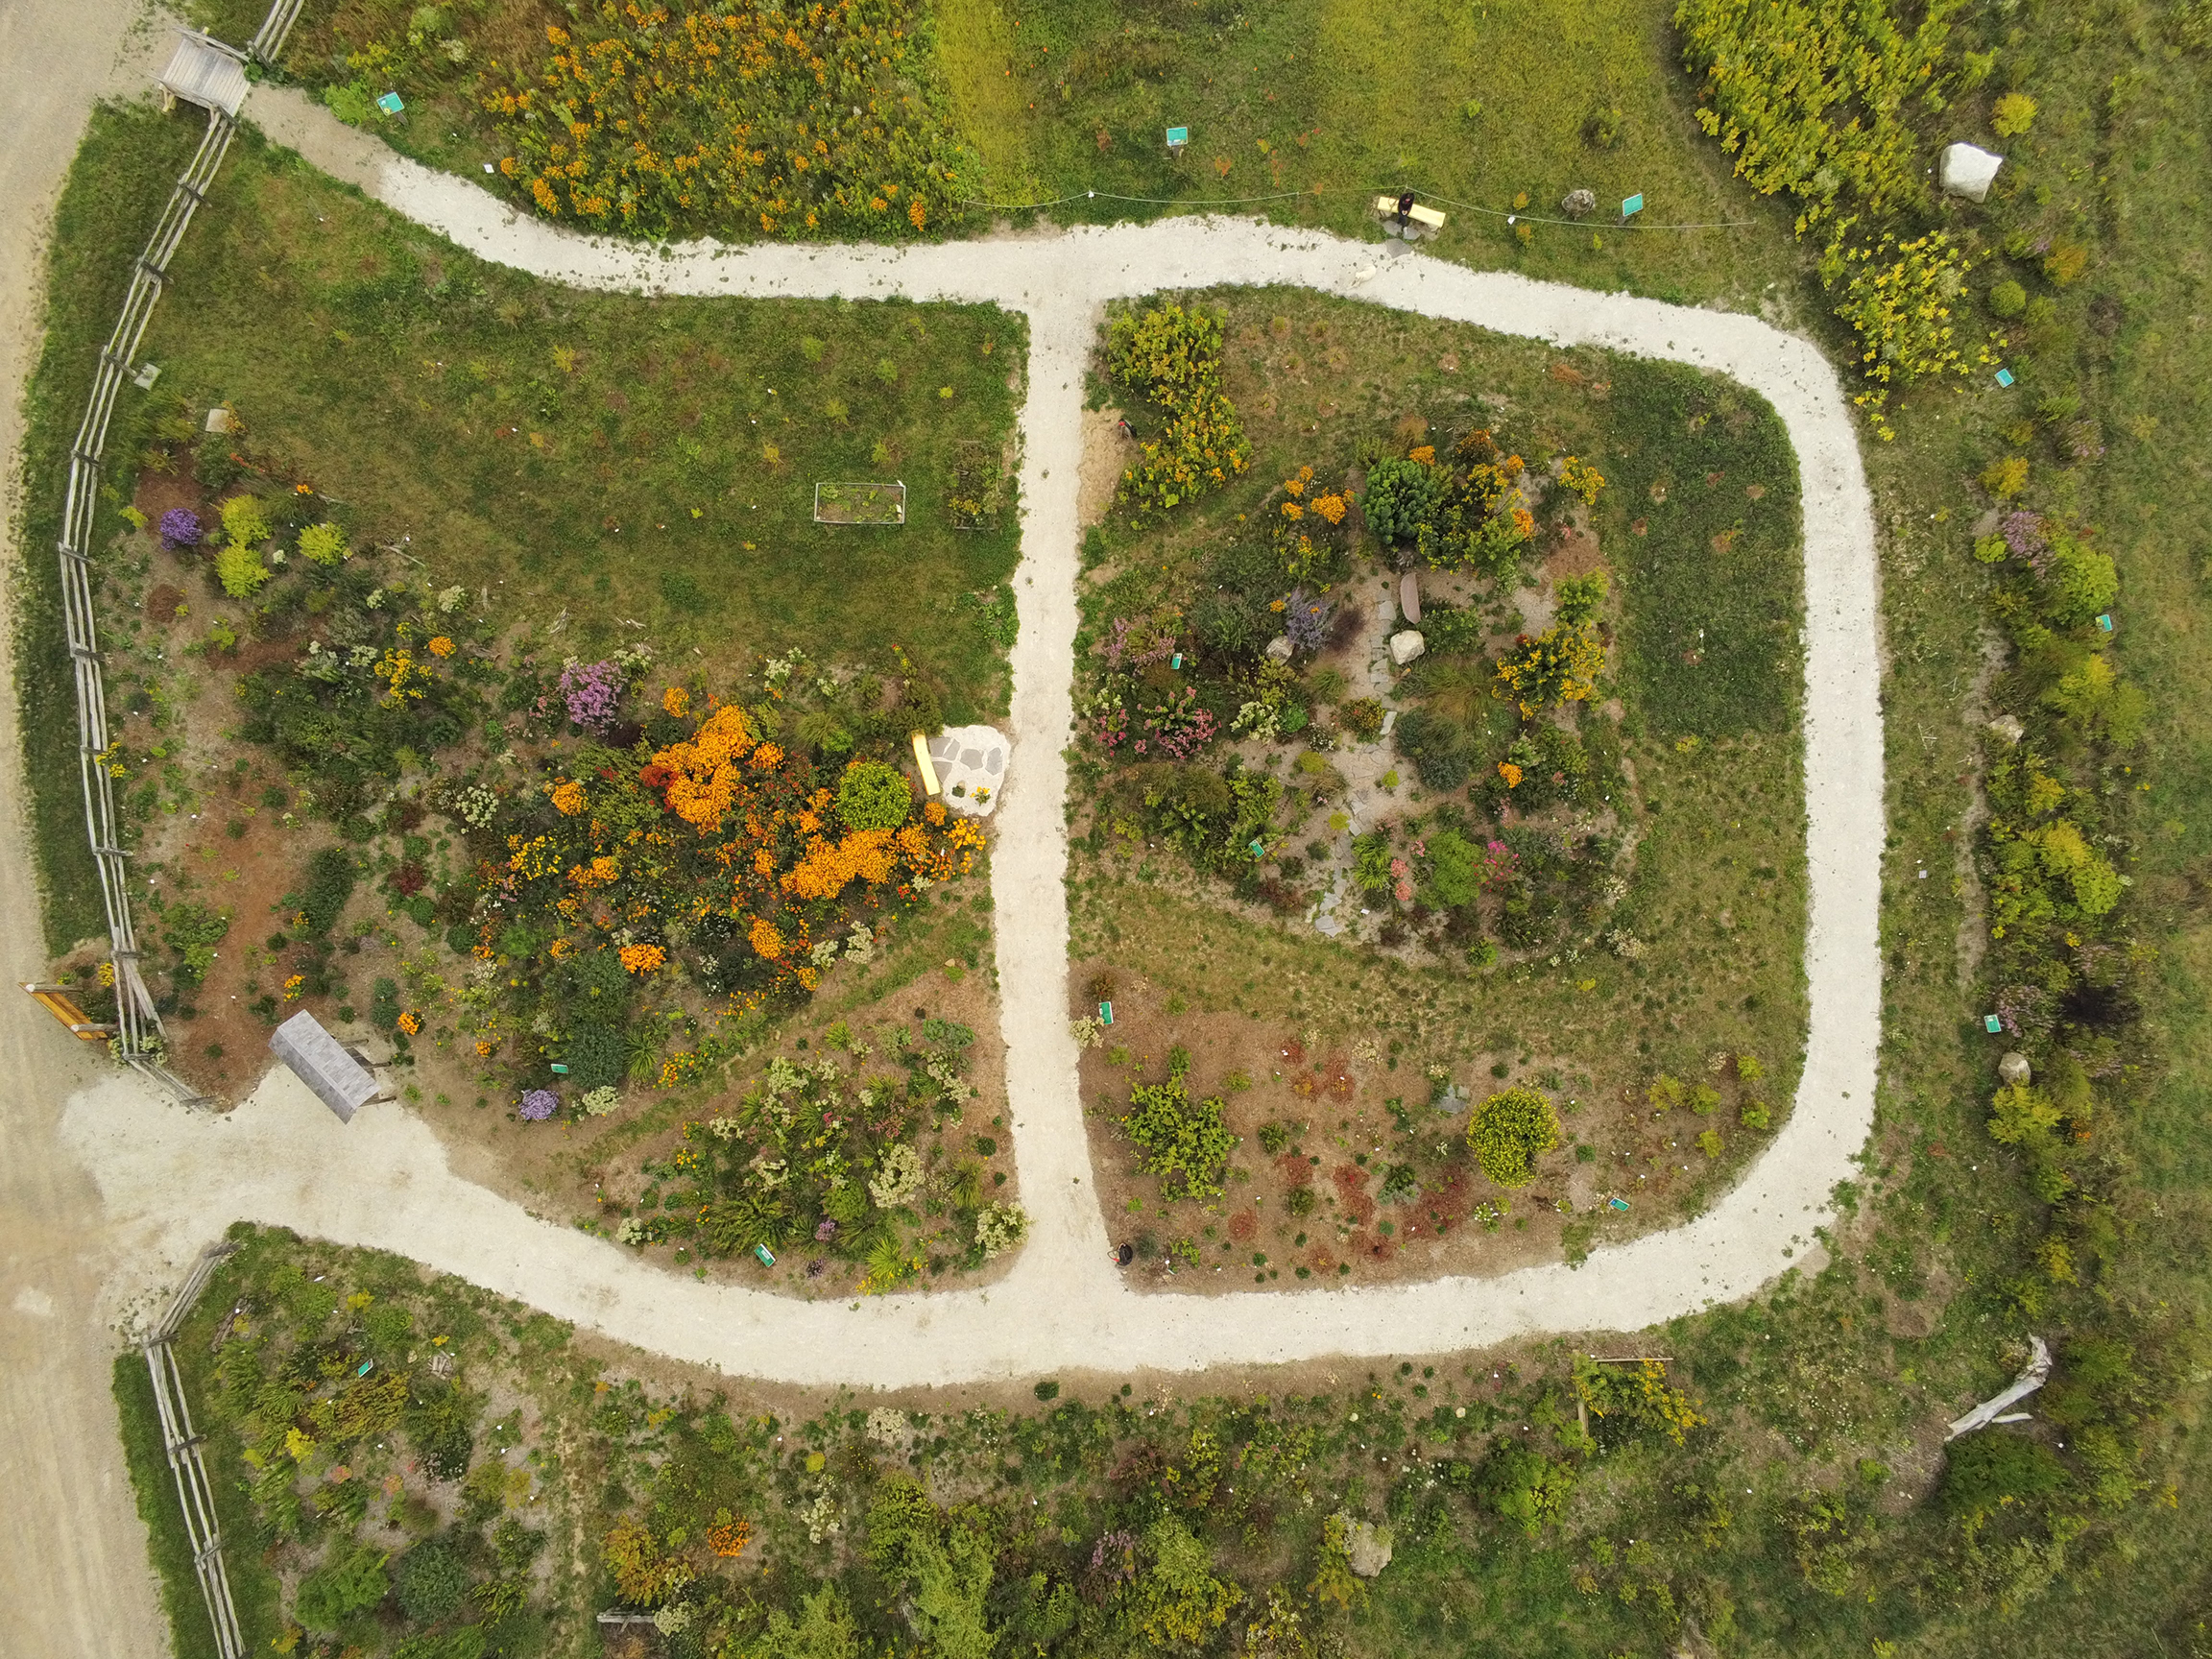 Aerial Photo of the Mono Pollinator Garden